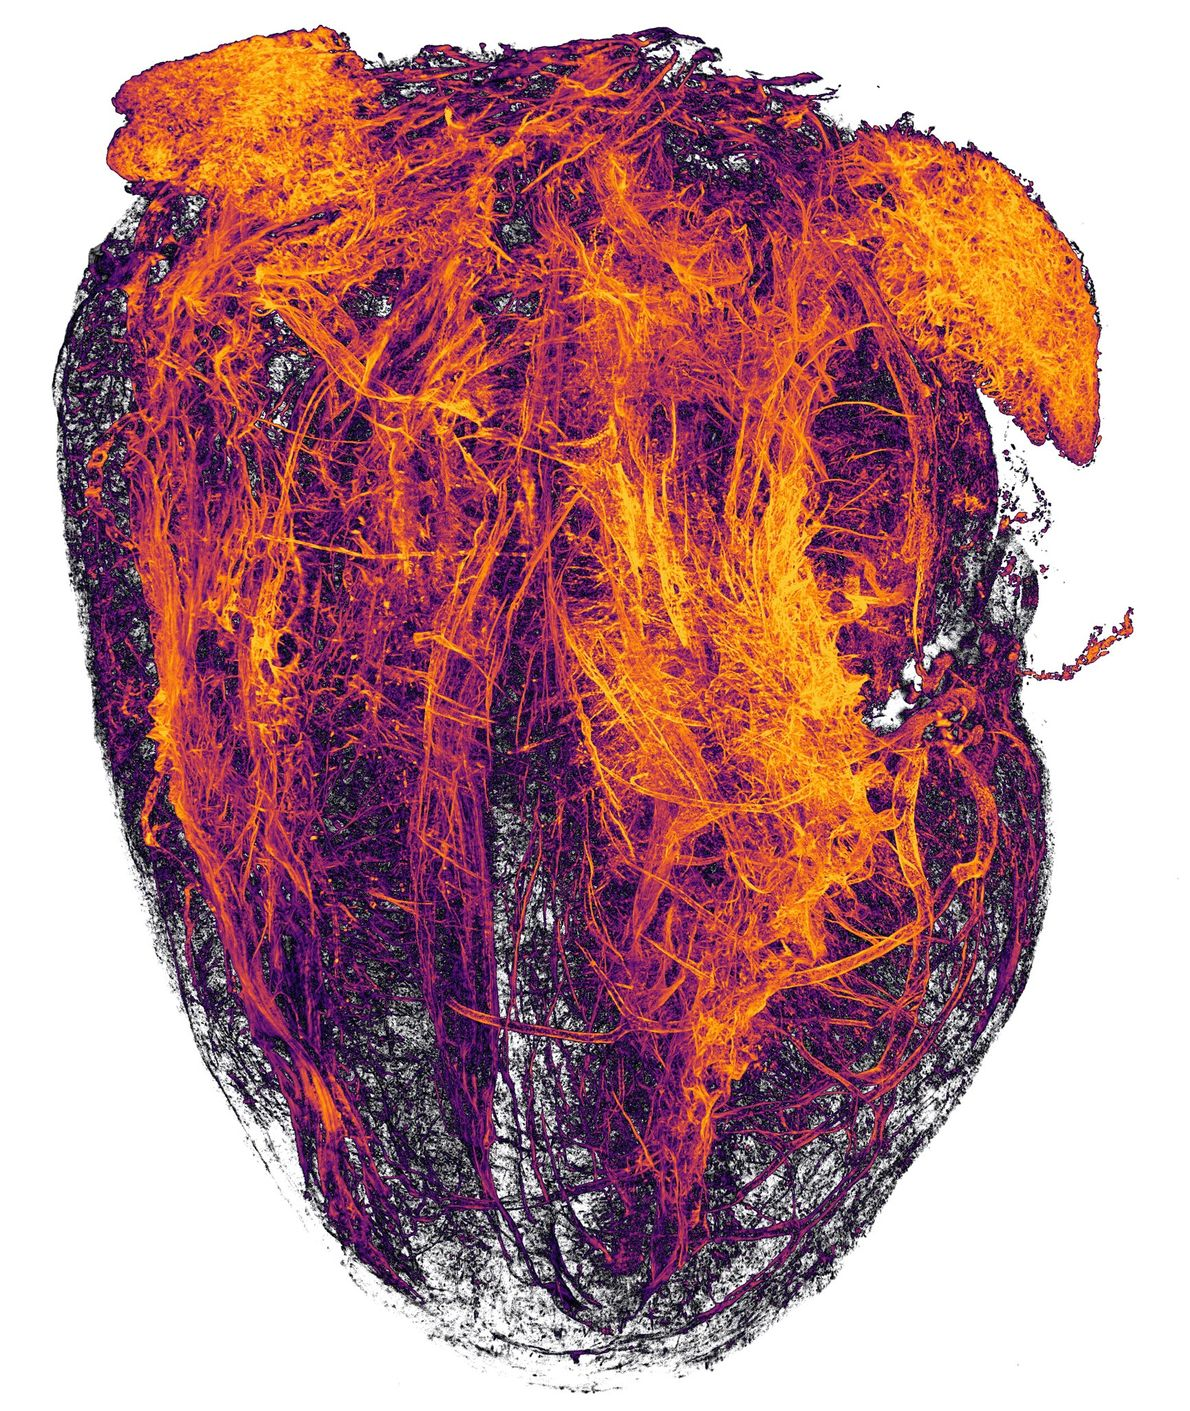 These fiery orange tendrils, imaged by University Hospital Essen researchers, are blood vessels from a mouse's ...